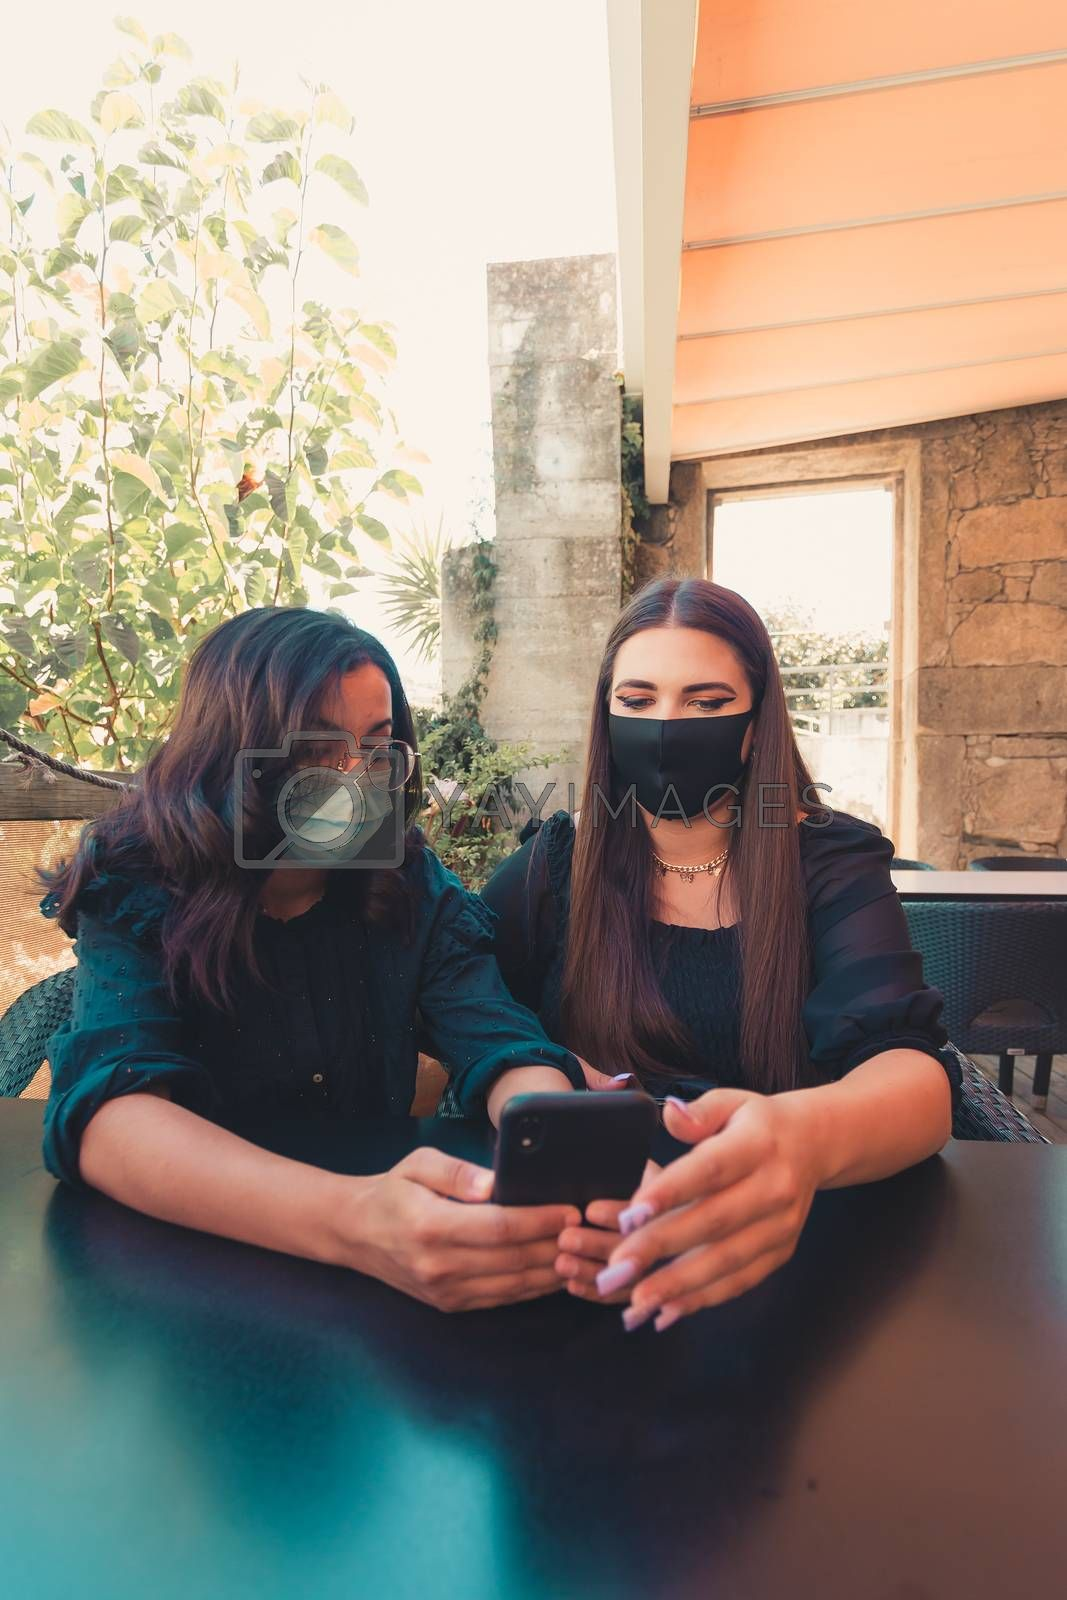 A vertical shot of two women using masks looking at the screen of the phone in a bar